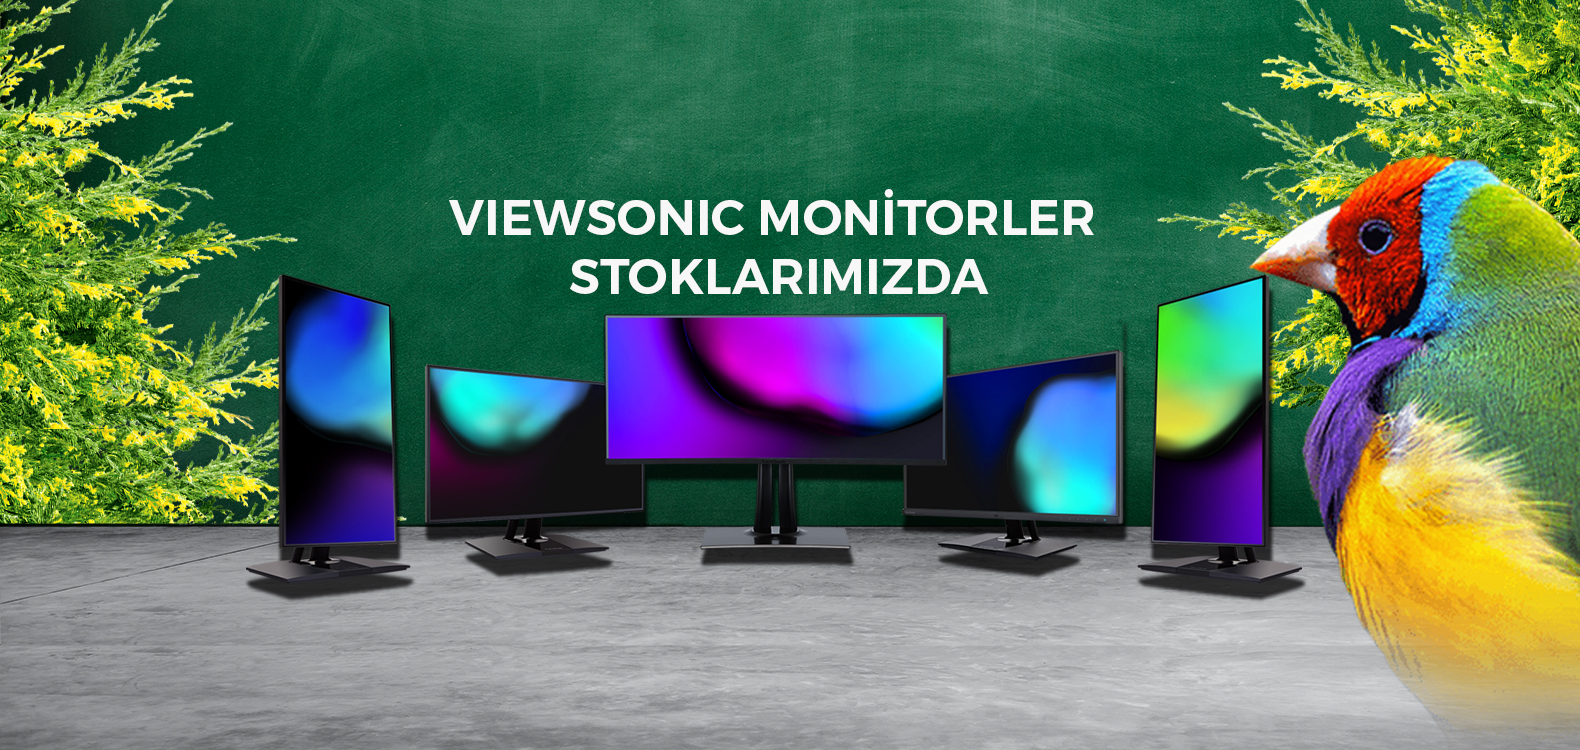 Viewsonic Monitorler